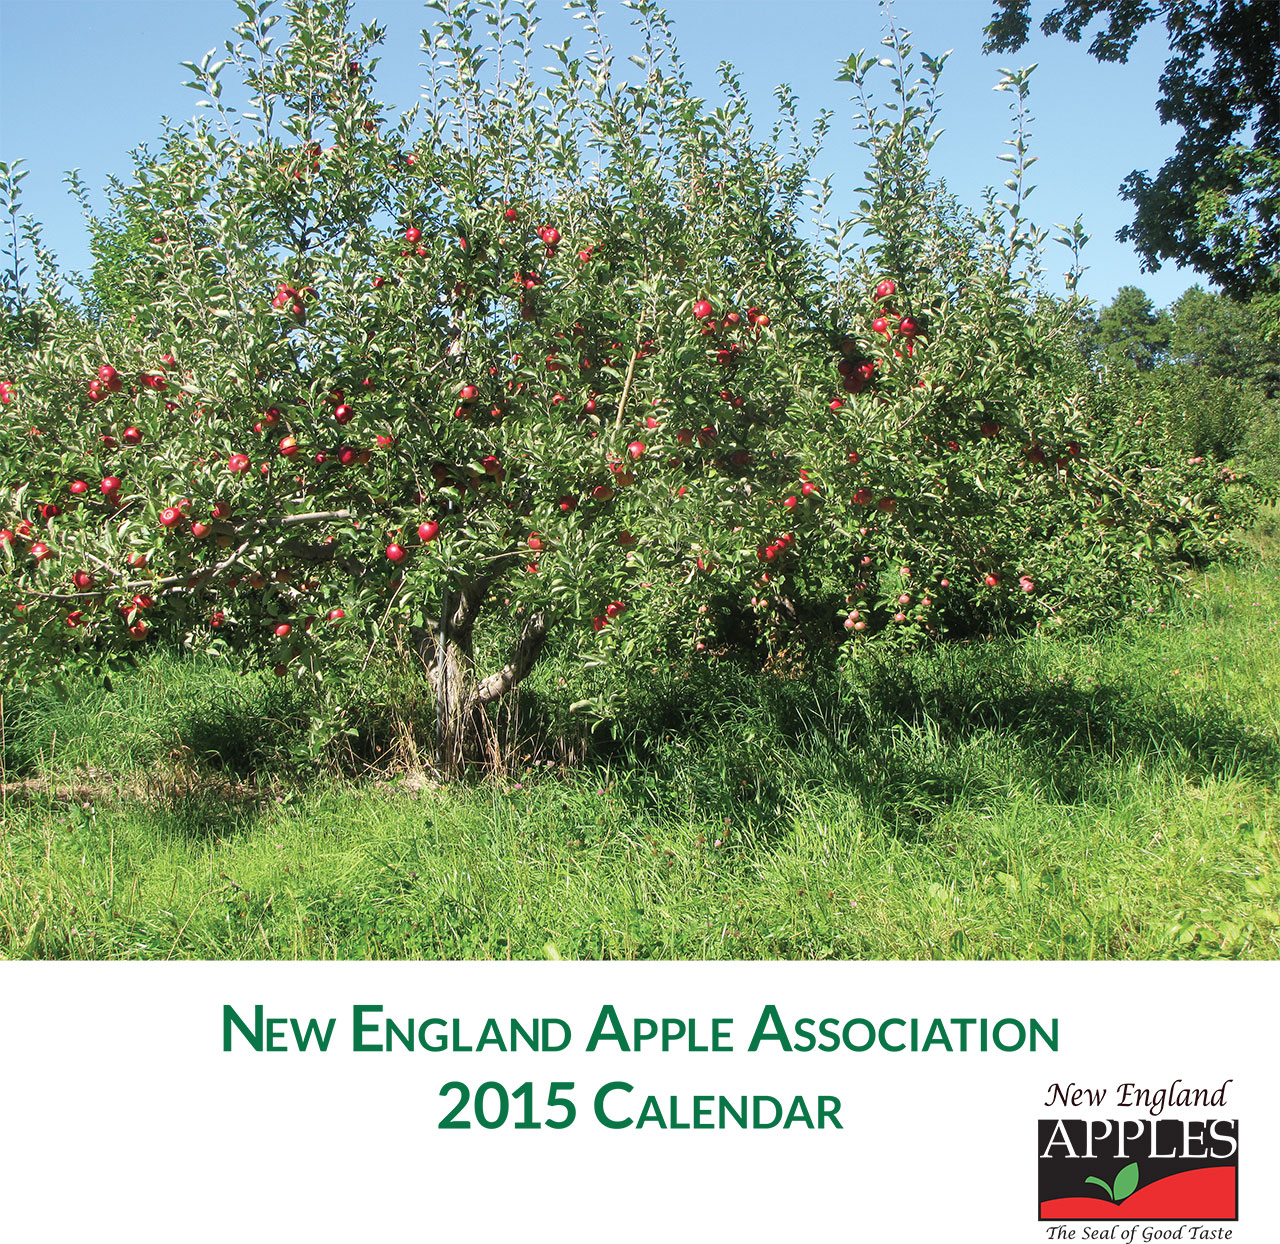 2015 New England Apples wall calendar